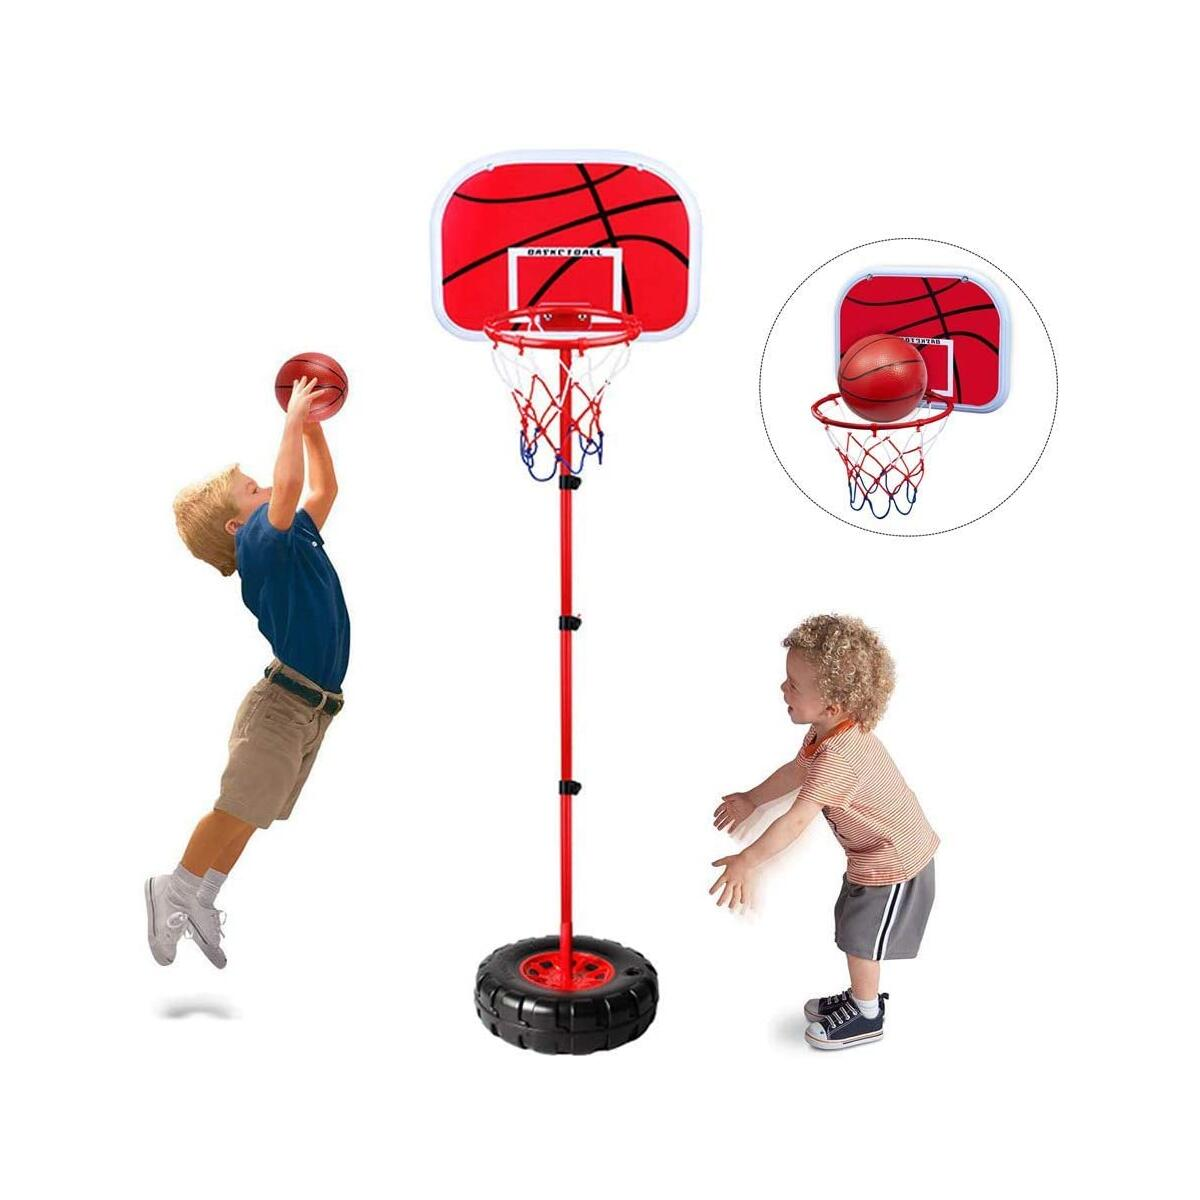 Toddler Basketball Hoop Stand Wall 2-in-1 Basketball Set Kids Portable Height-adjustable Basketball Goal Toy with Ball Pump Indooll Sets Toy with Ball Pump Indoor and Outdoor Fun Toys for 2+ Years Old